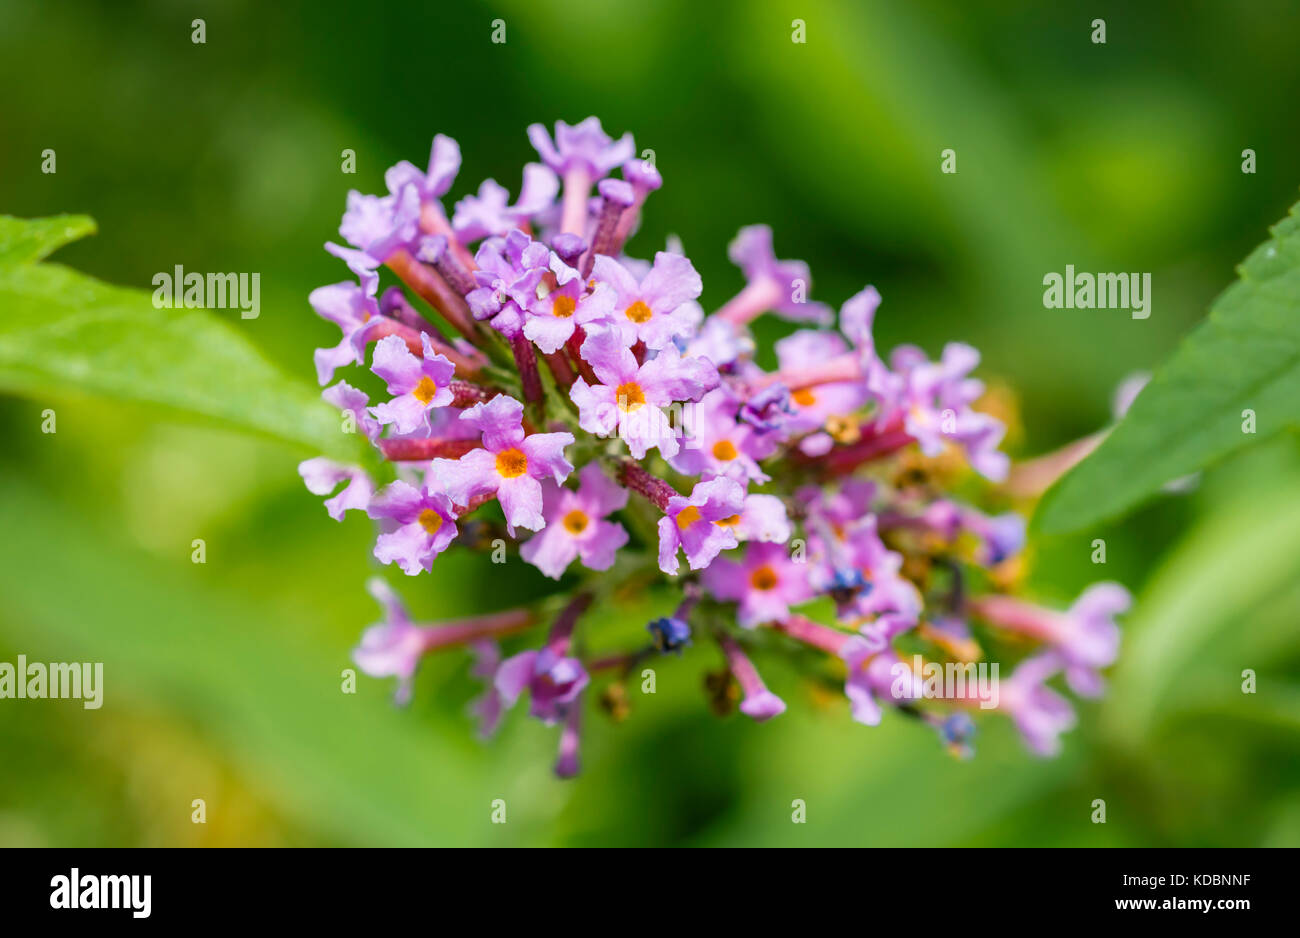 Closeup of a purple or pink Buddleia bush in Summer in the UK. - Stock Image